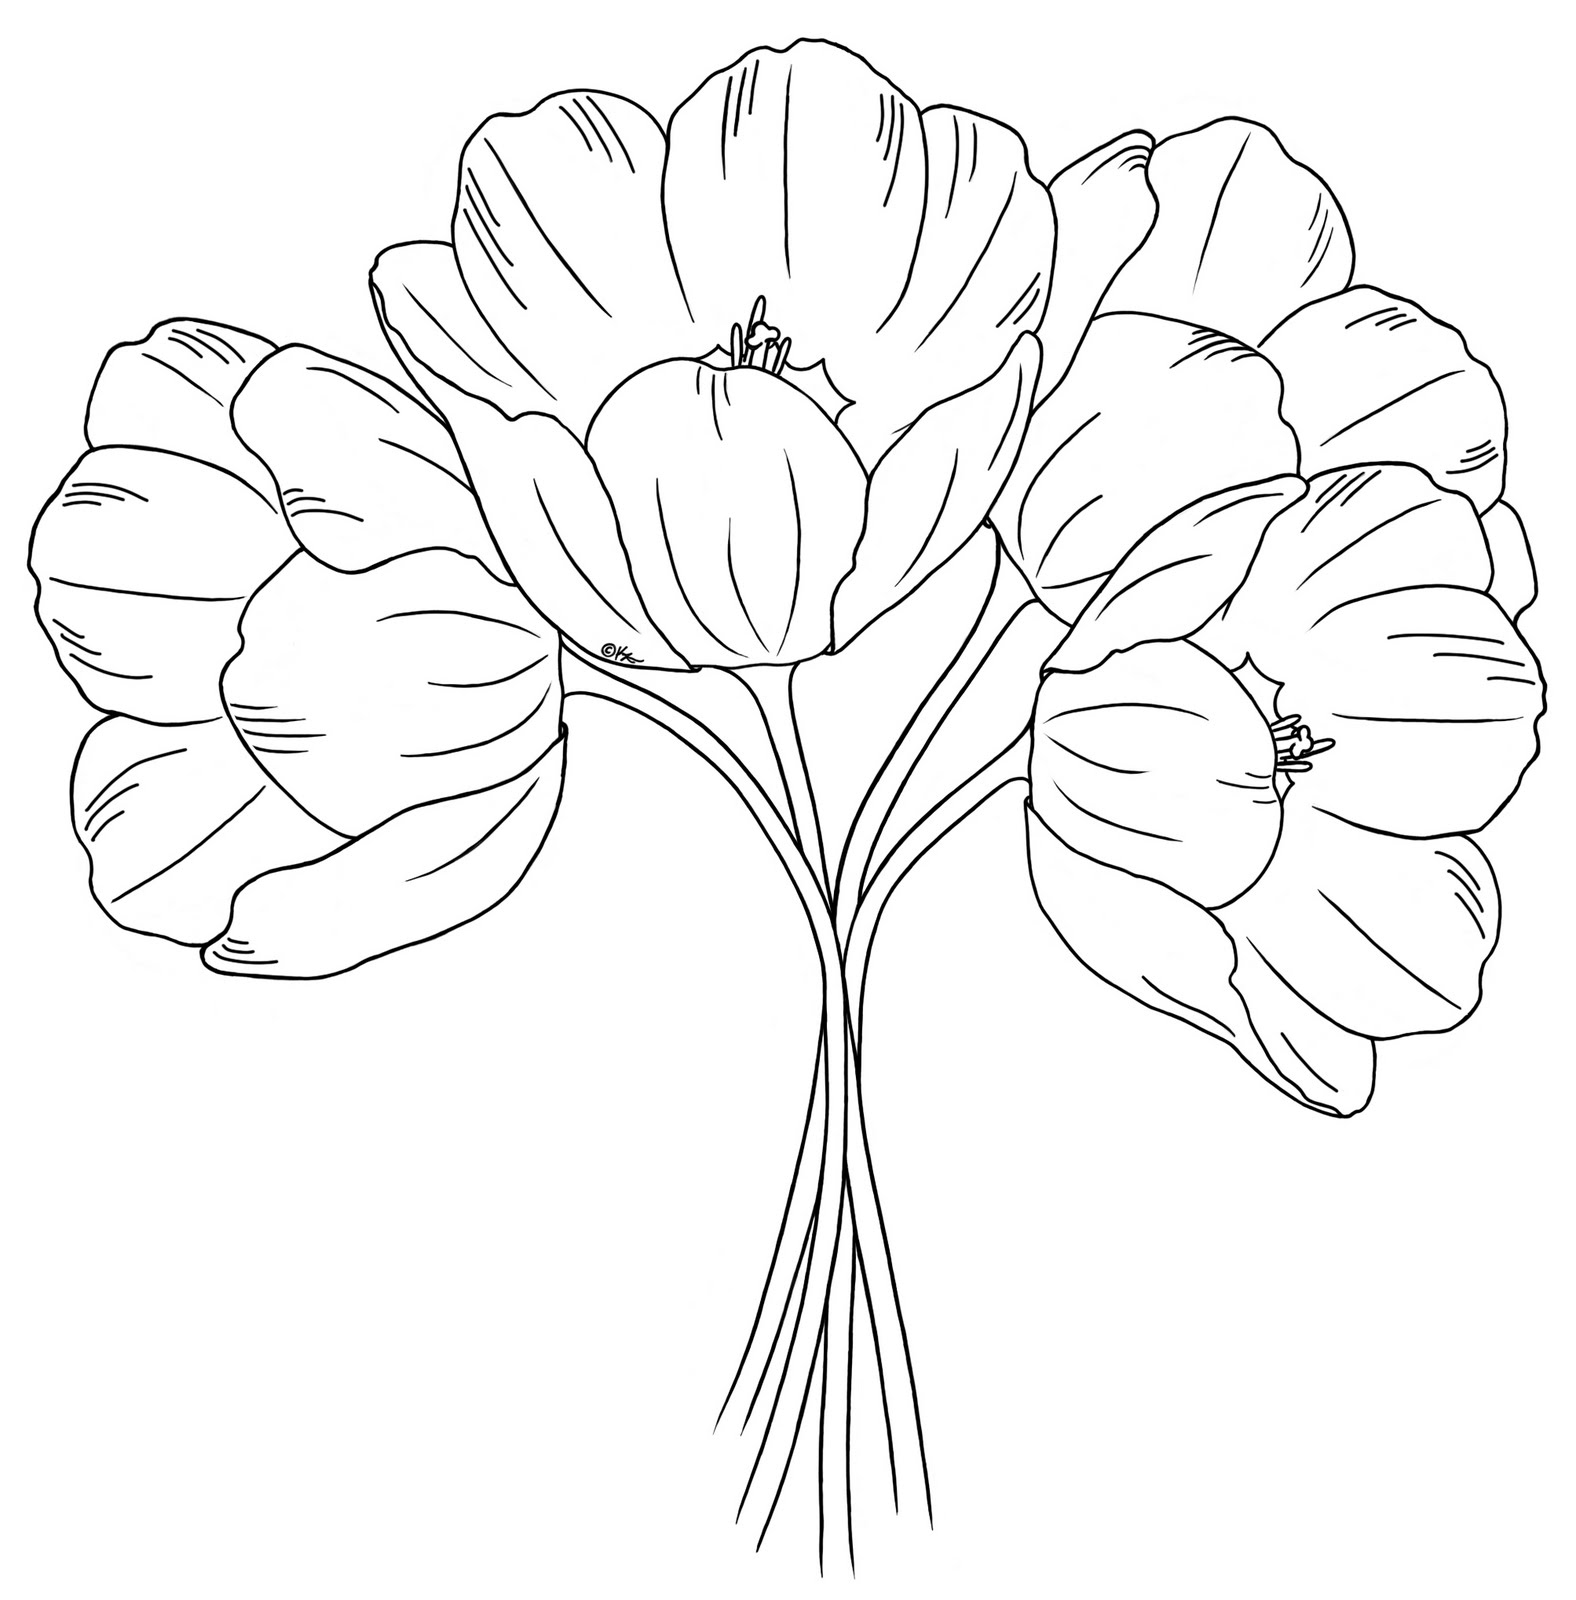 Tulip Flower Outline Sketch Coloring Page